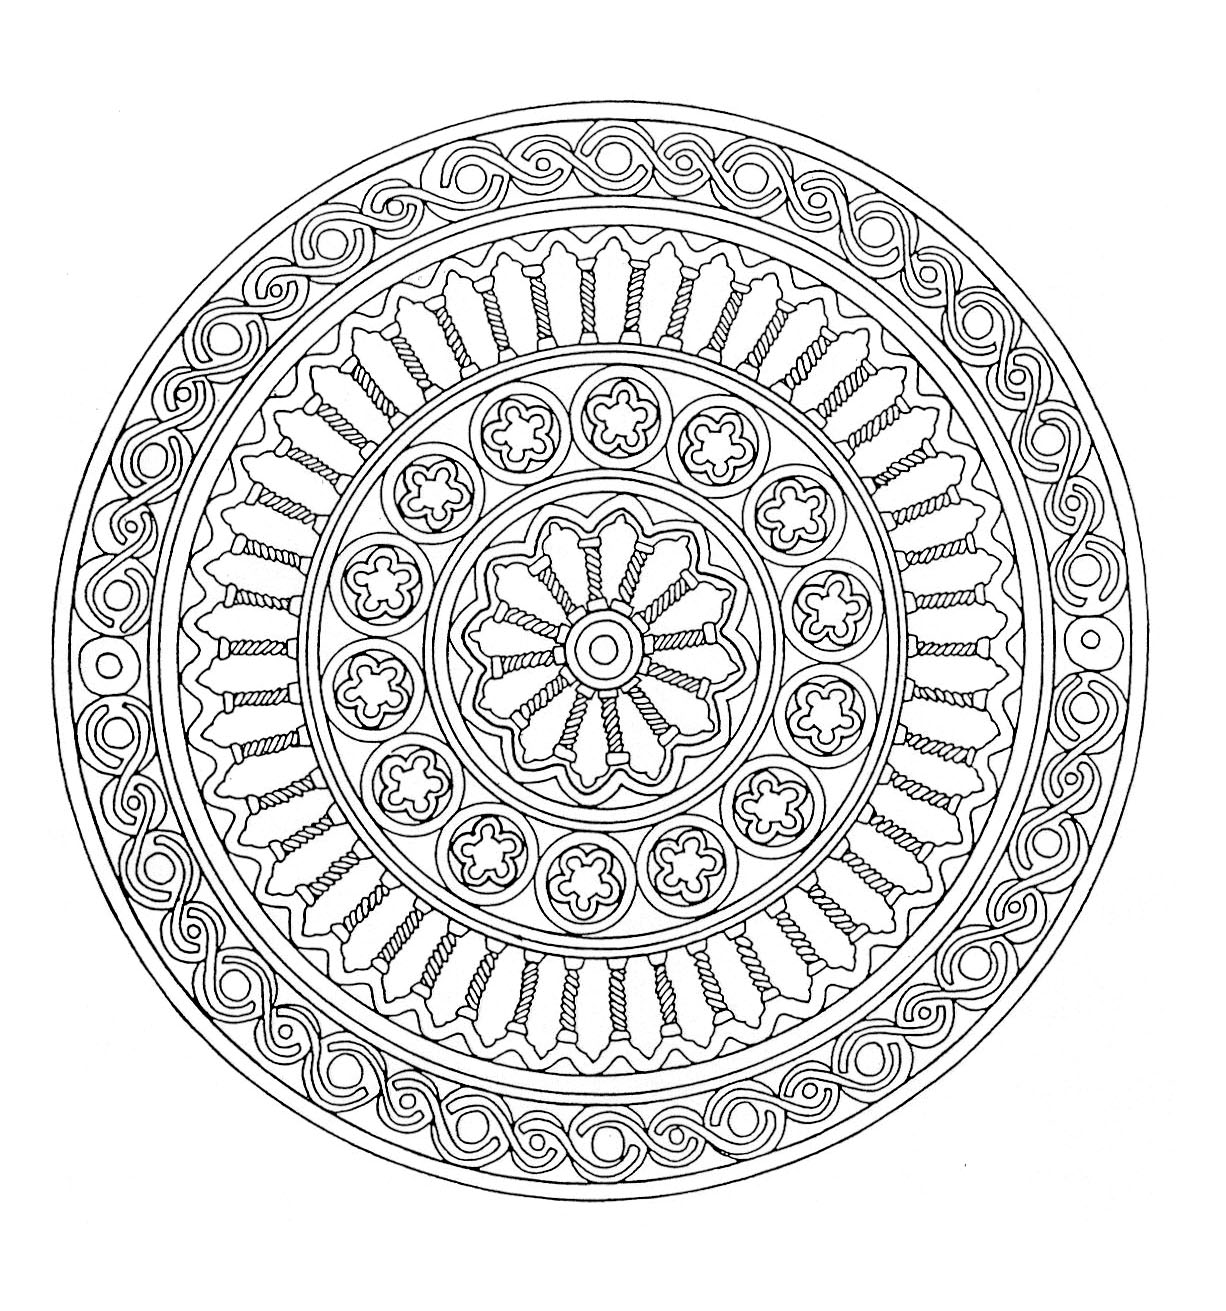 Is the Greece served as inspiration for this Mandala? In any case it seems there is columns of temples in this coloring page. See for yourself ... and color !